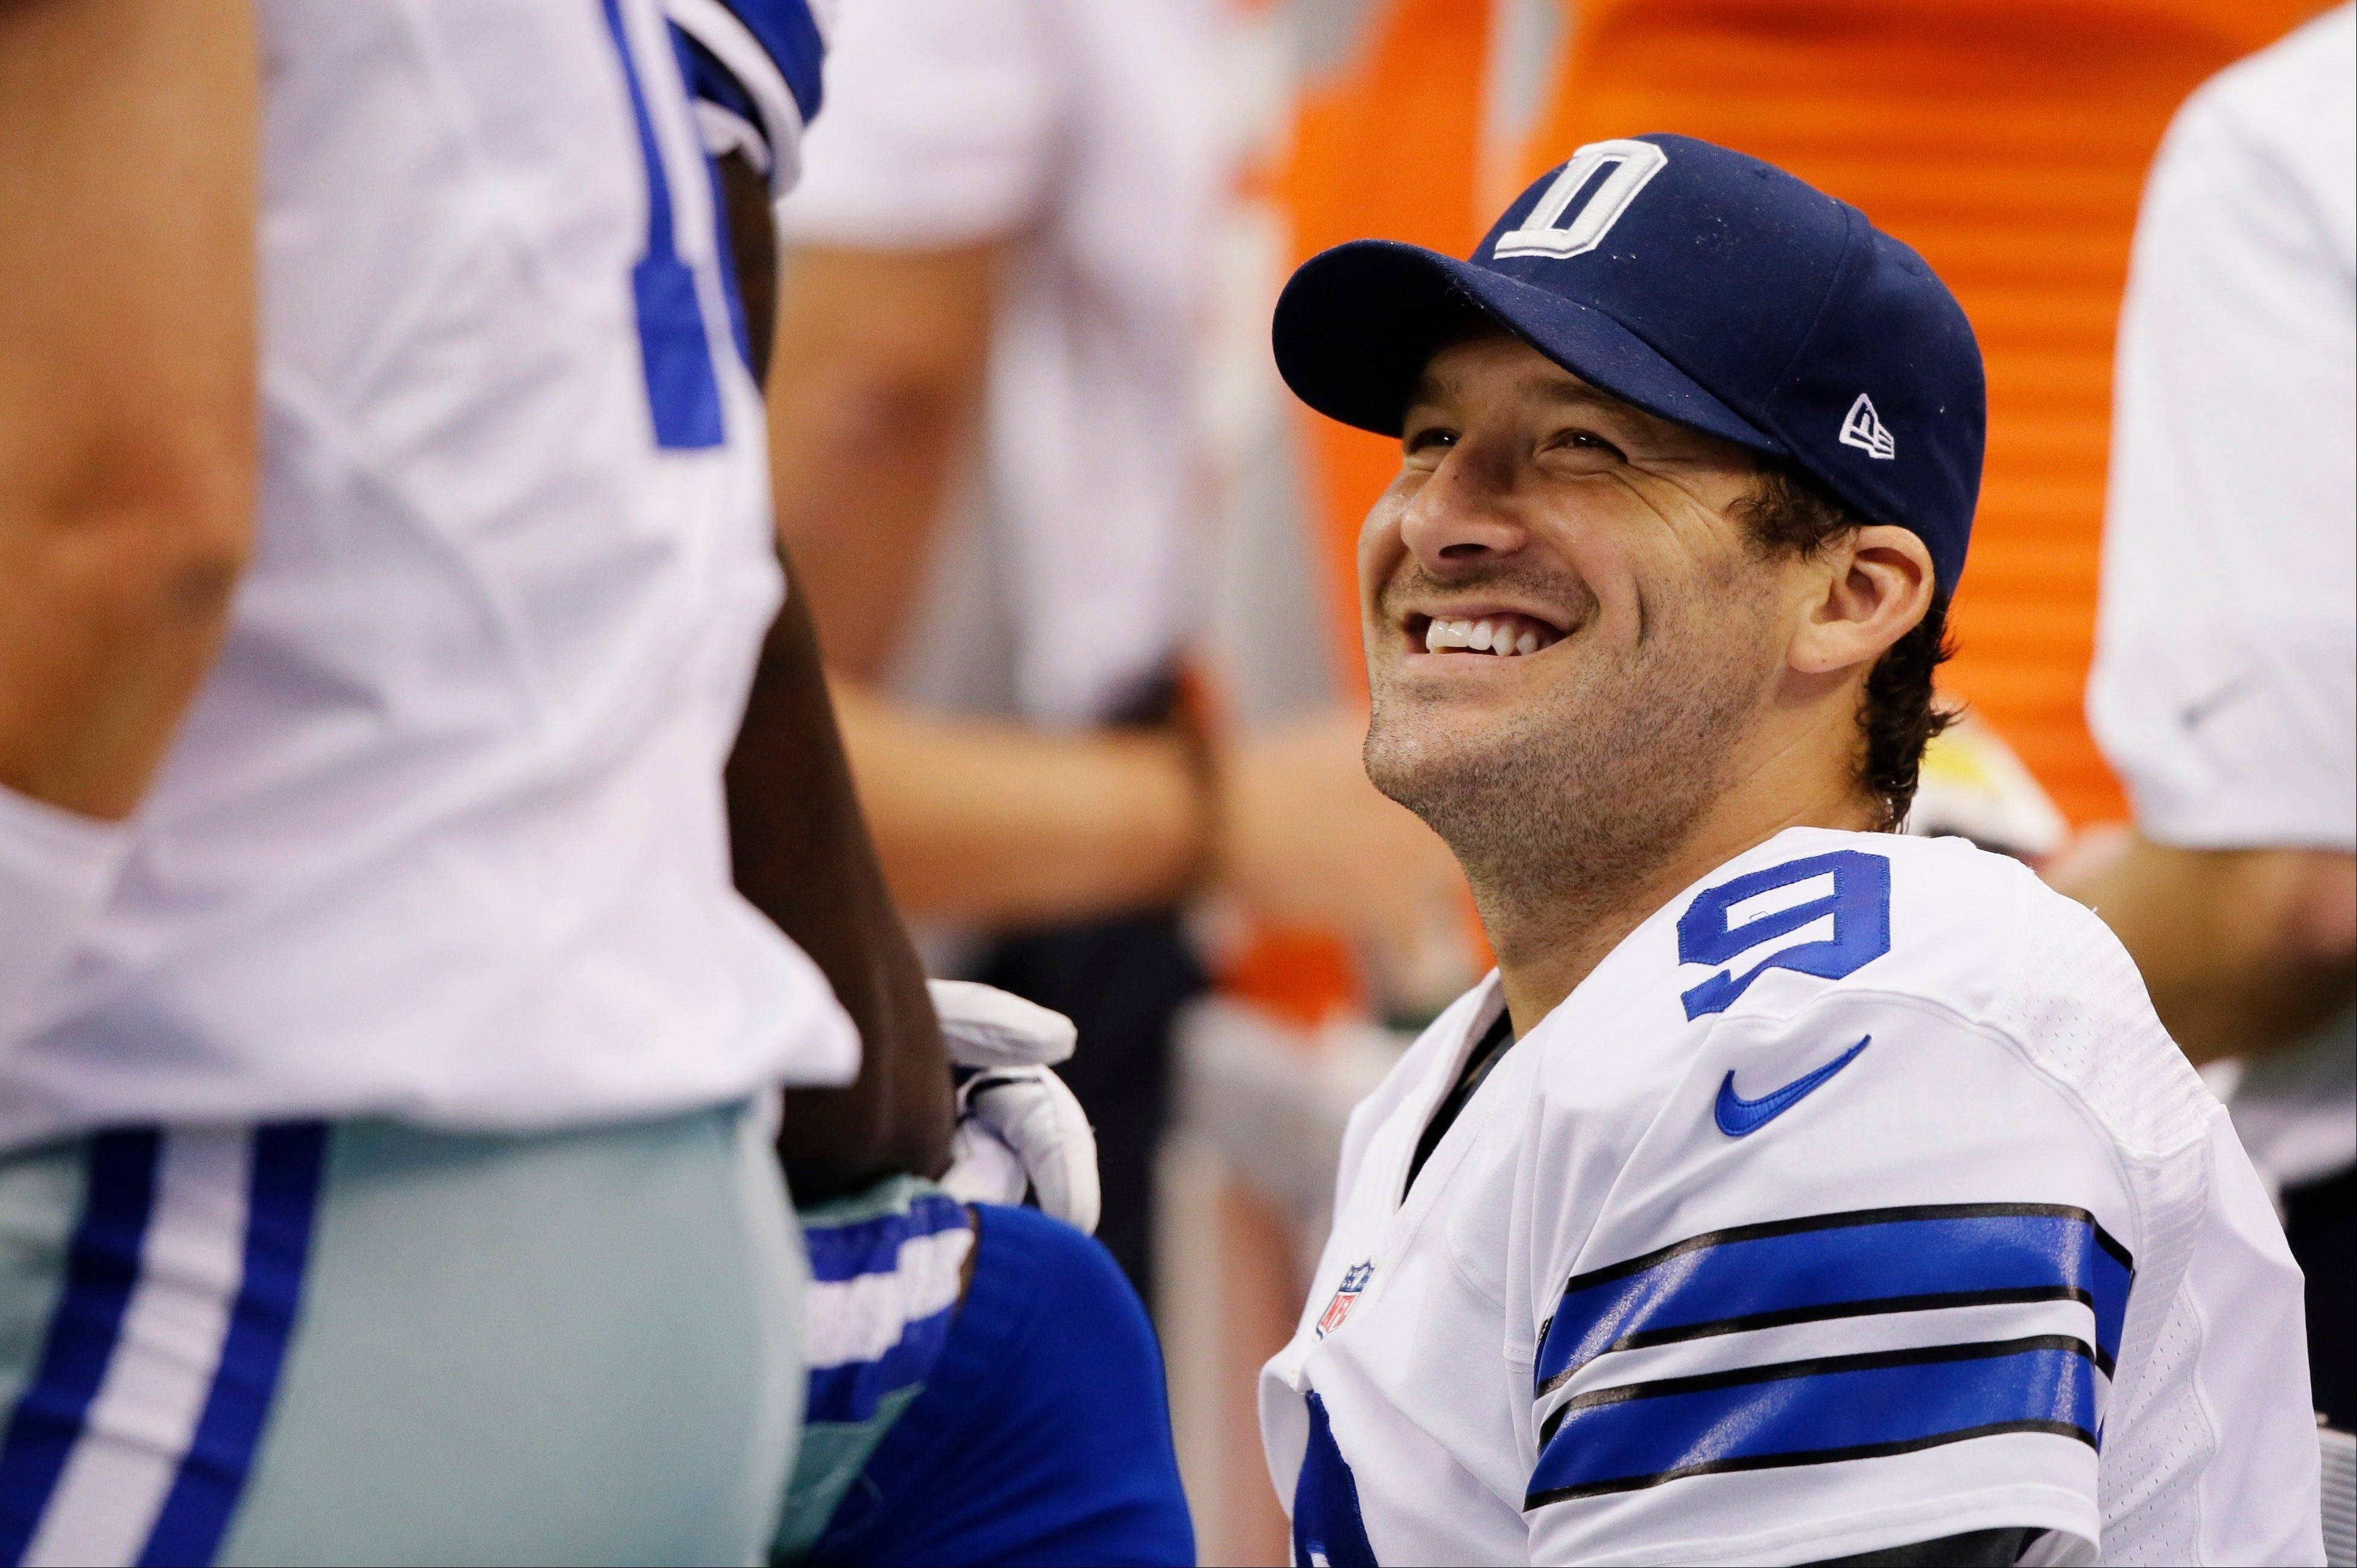 Dallas Cowboys quarterback Tony Romo (9) talks with teammates on the sideline during the fourth quarter of a NFL football game against the St. Louis Rams, Sunday, Sept. 22, 2013, in Arlington, Texas. The Cowboys won 31-7.